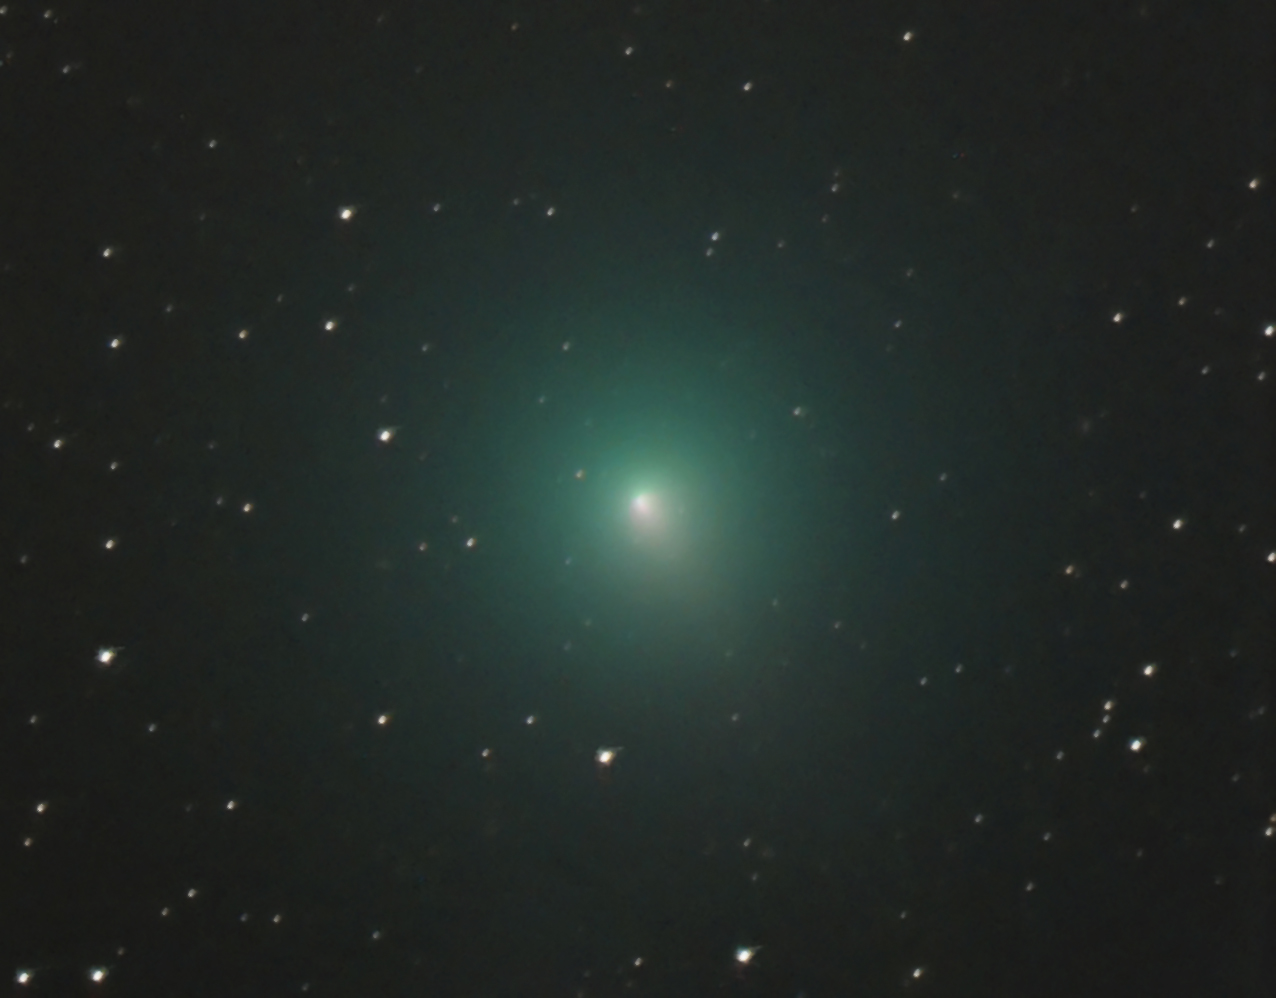 1567213865599-Comet_46P_Wirtanen_from_La_Palma.jpg